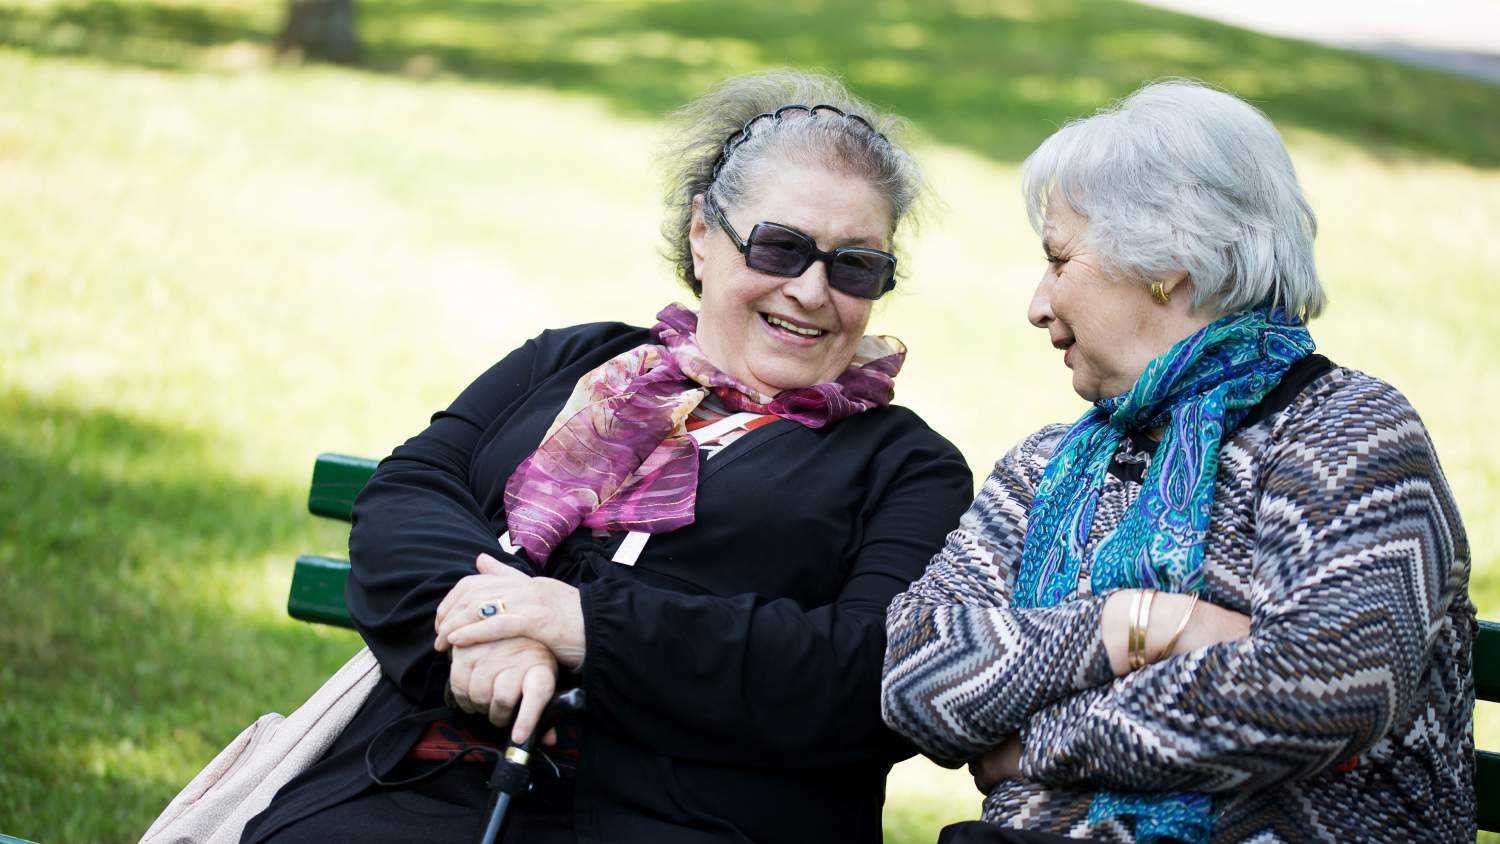 Two senior ladies having a conversation in a park